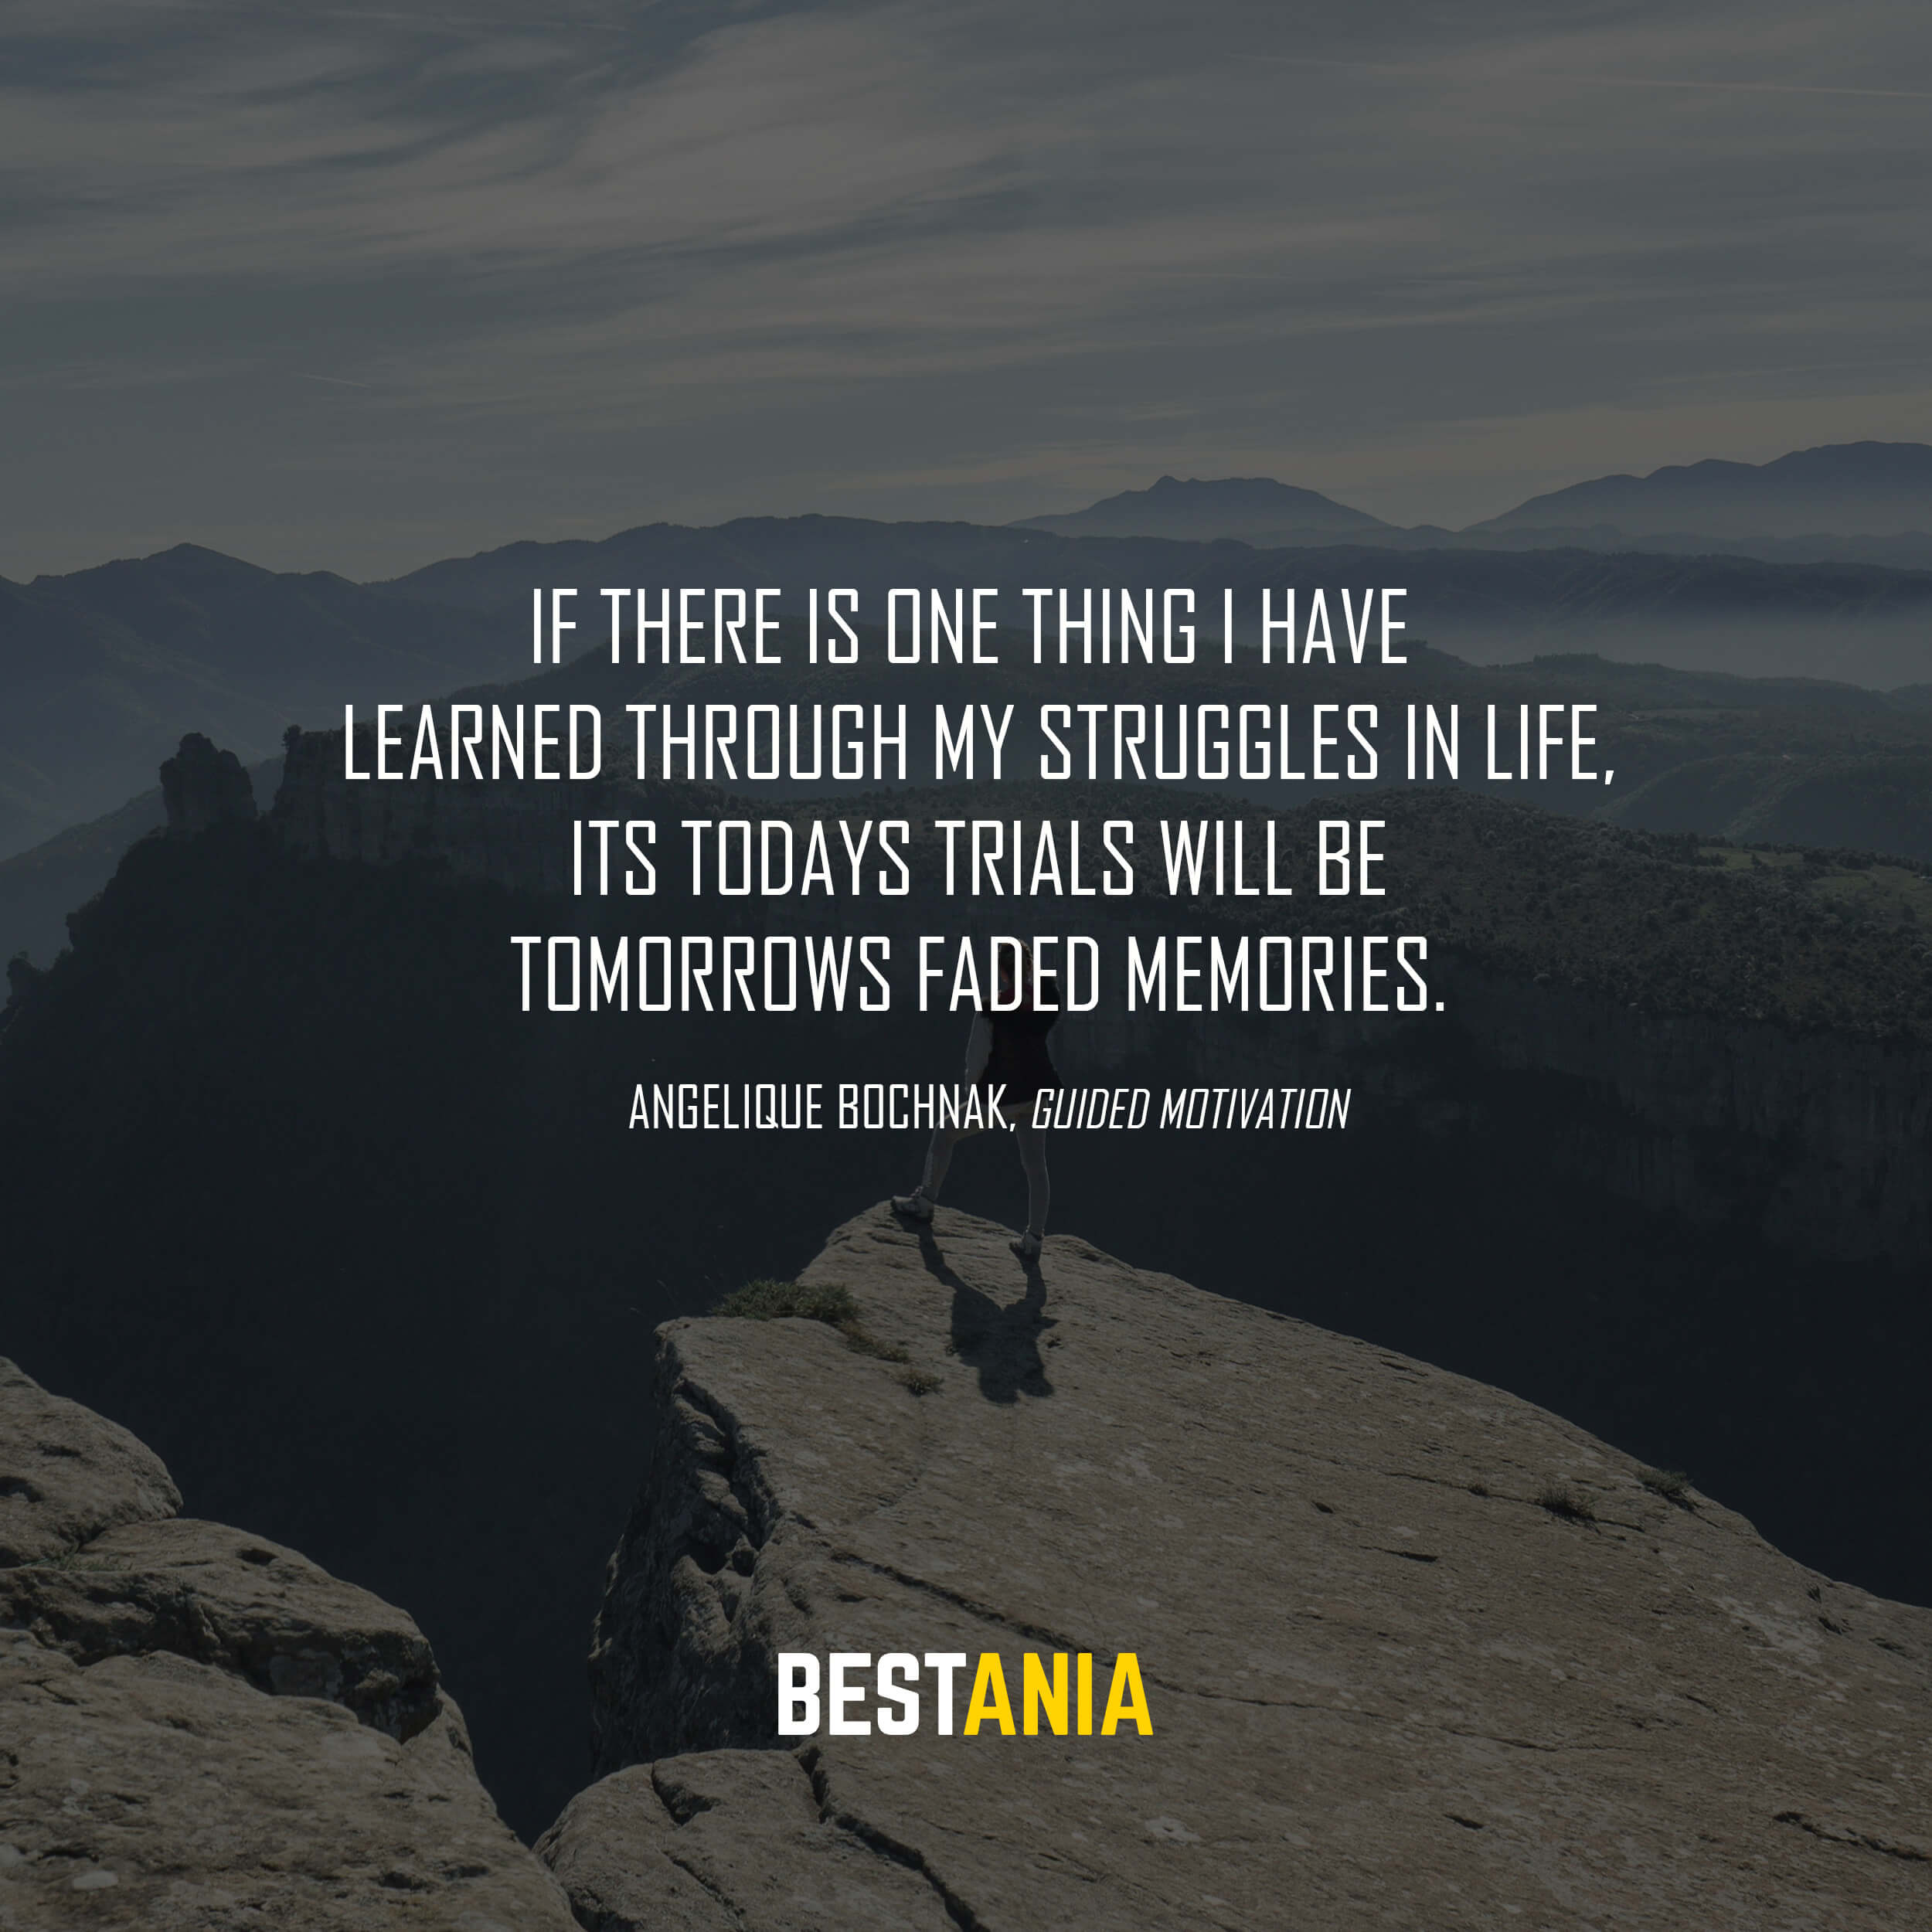 """""""If there is one thing I have learned through my struggles in life, its todays trials will be tomorrows faded memories."""" Angelique Bochnak, Guided Motivation"""